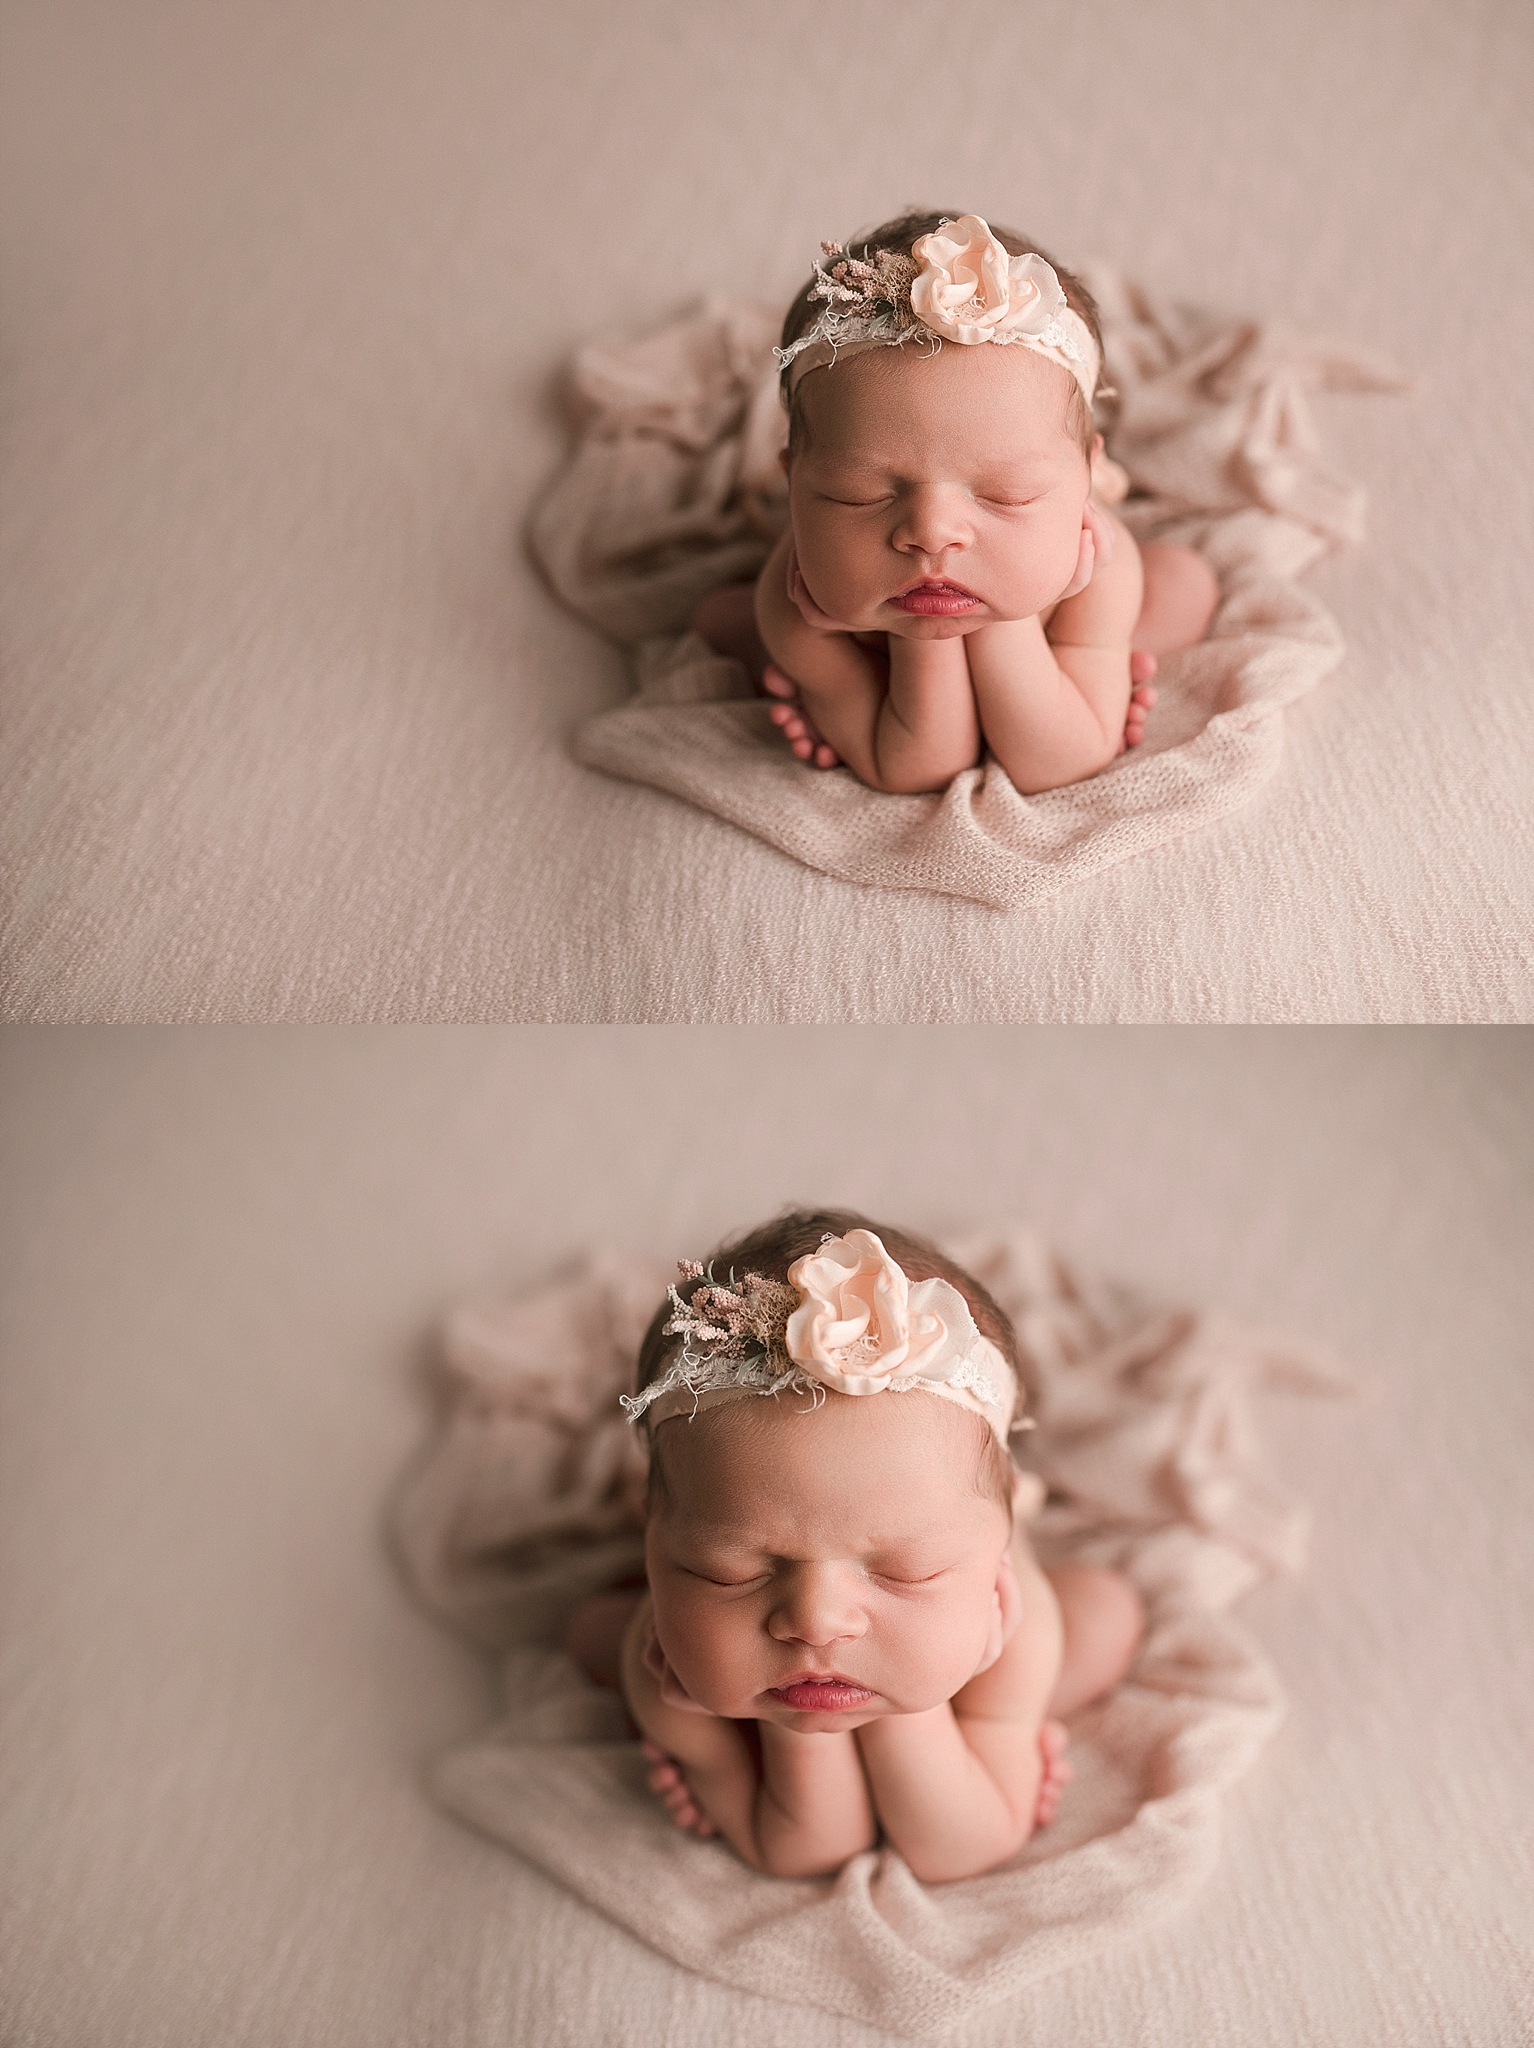 Froggy pose done safely-newborn posing